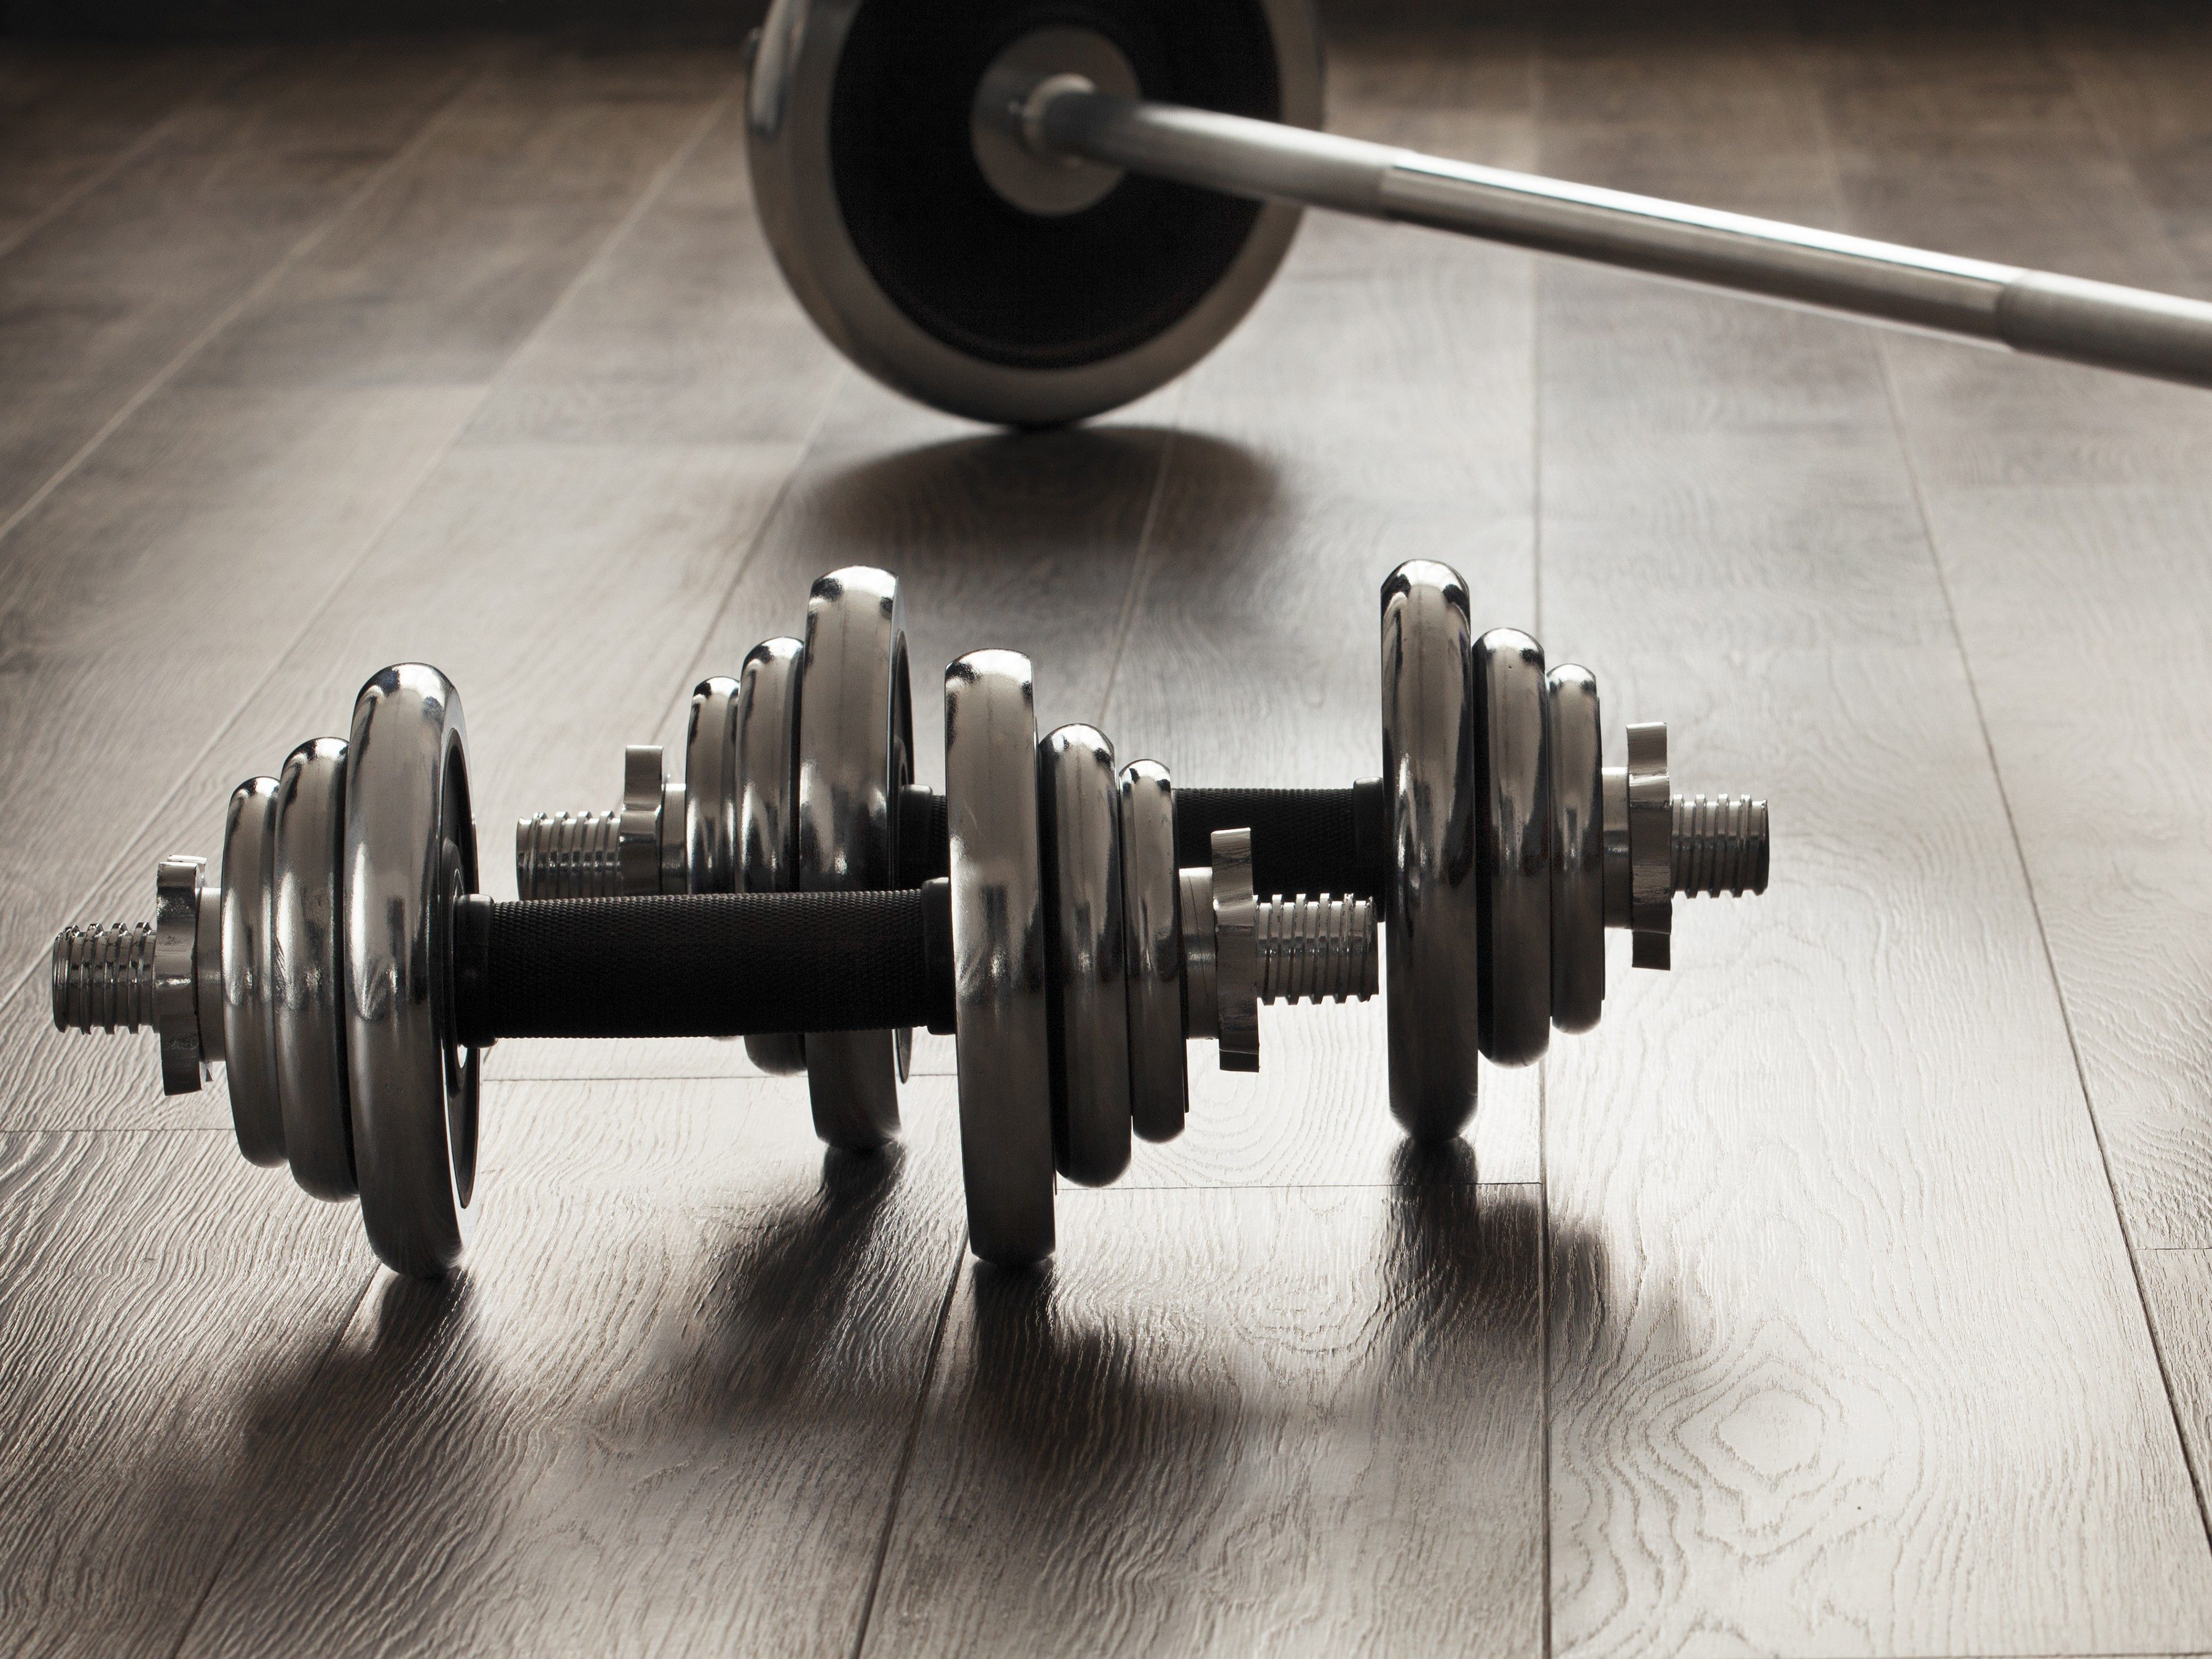 4. Mix up your workouts.